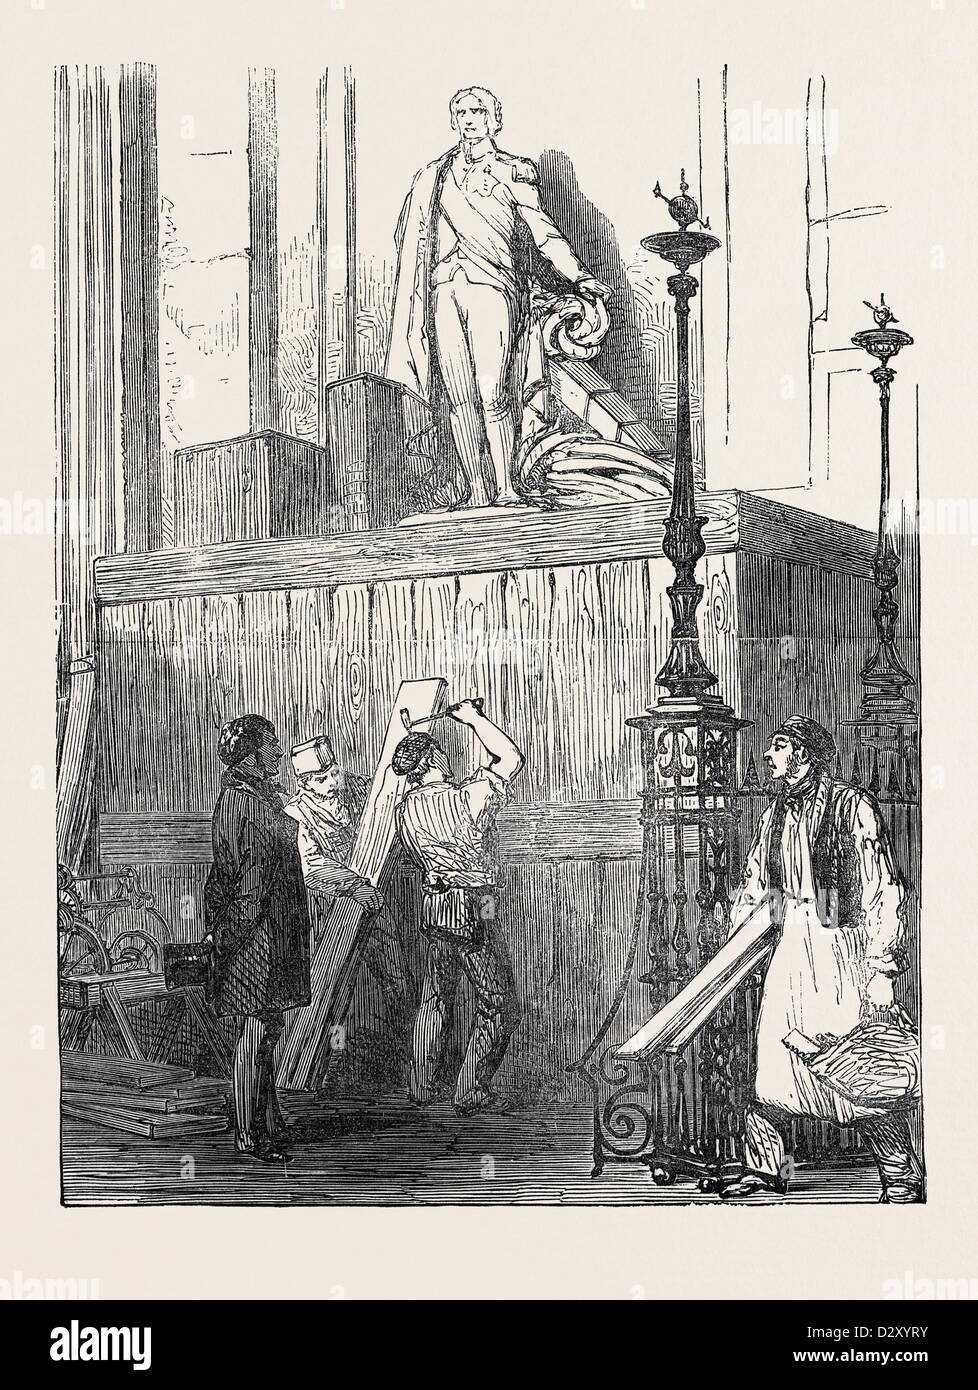 PREPARATIONS FOR THE FUNERAL OF THE DUKE OF WELLINGTON, IN ST. PAUL'S CATHEDRAL: THE NELSON MONUMENT, 1852 - Stock Image